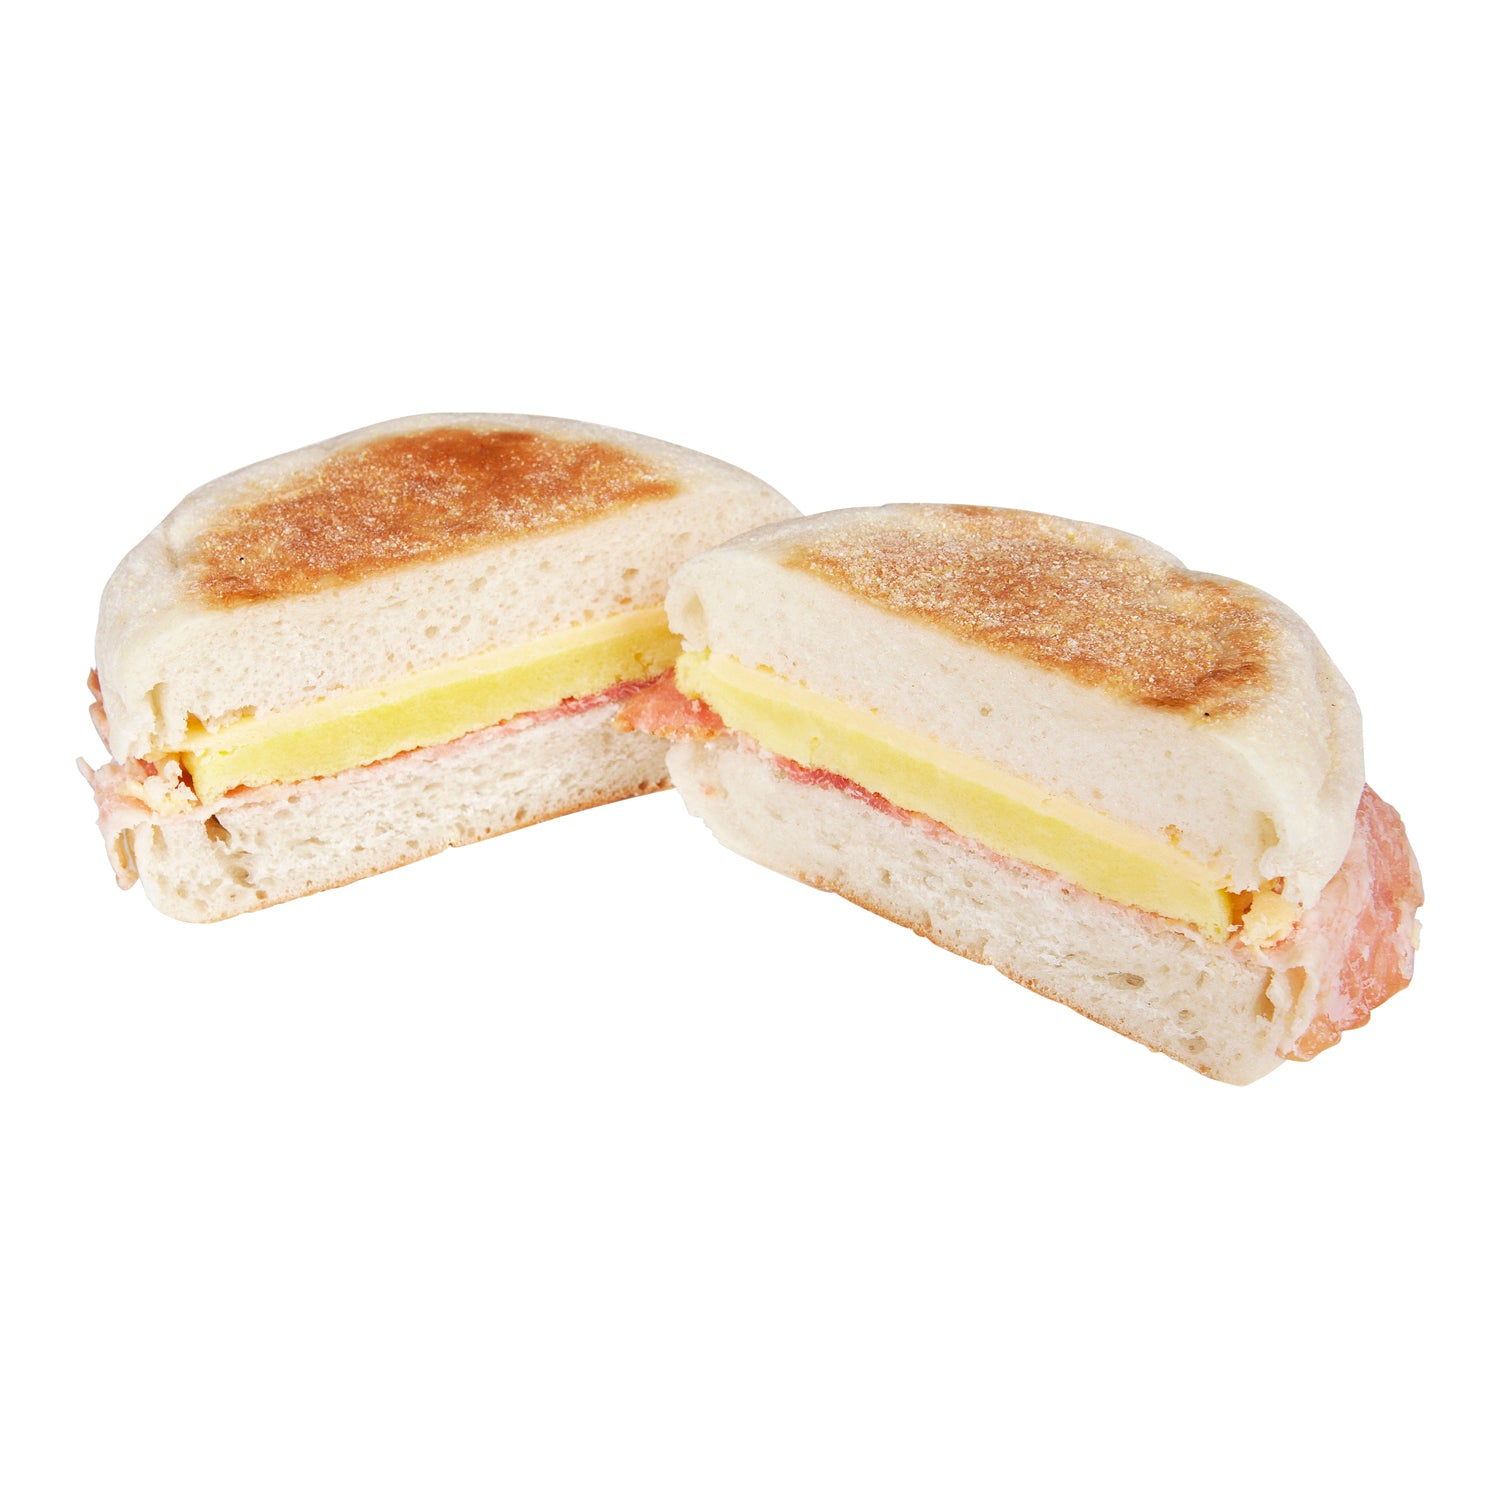 Jimmy Dean Frozen Breakfast Sandwich (English Muffin/Egg/Bacon/Cheese) 104 g - 12 Pack [$2.33/each]